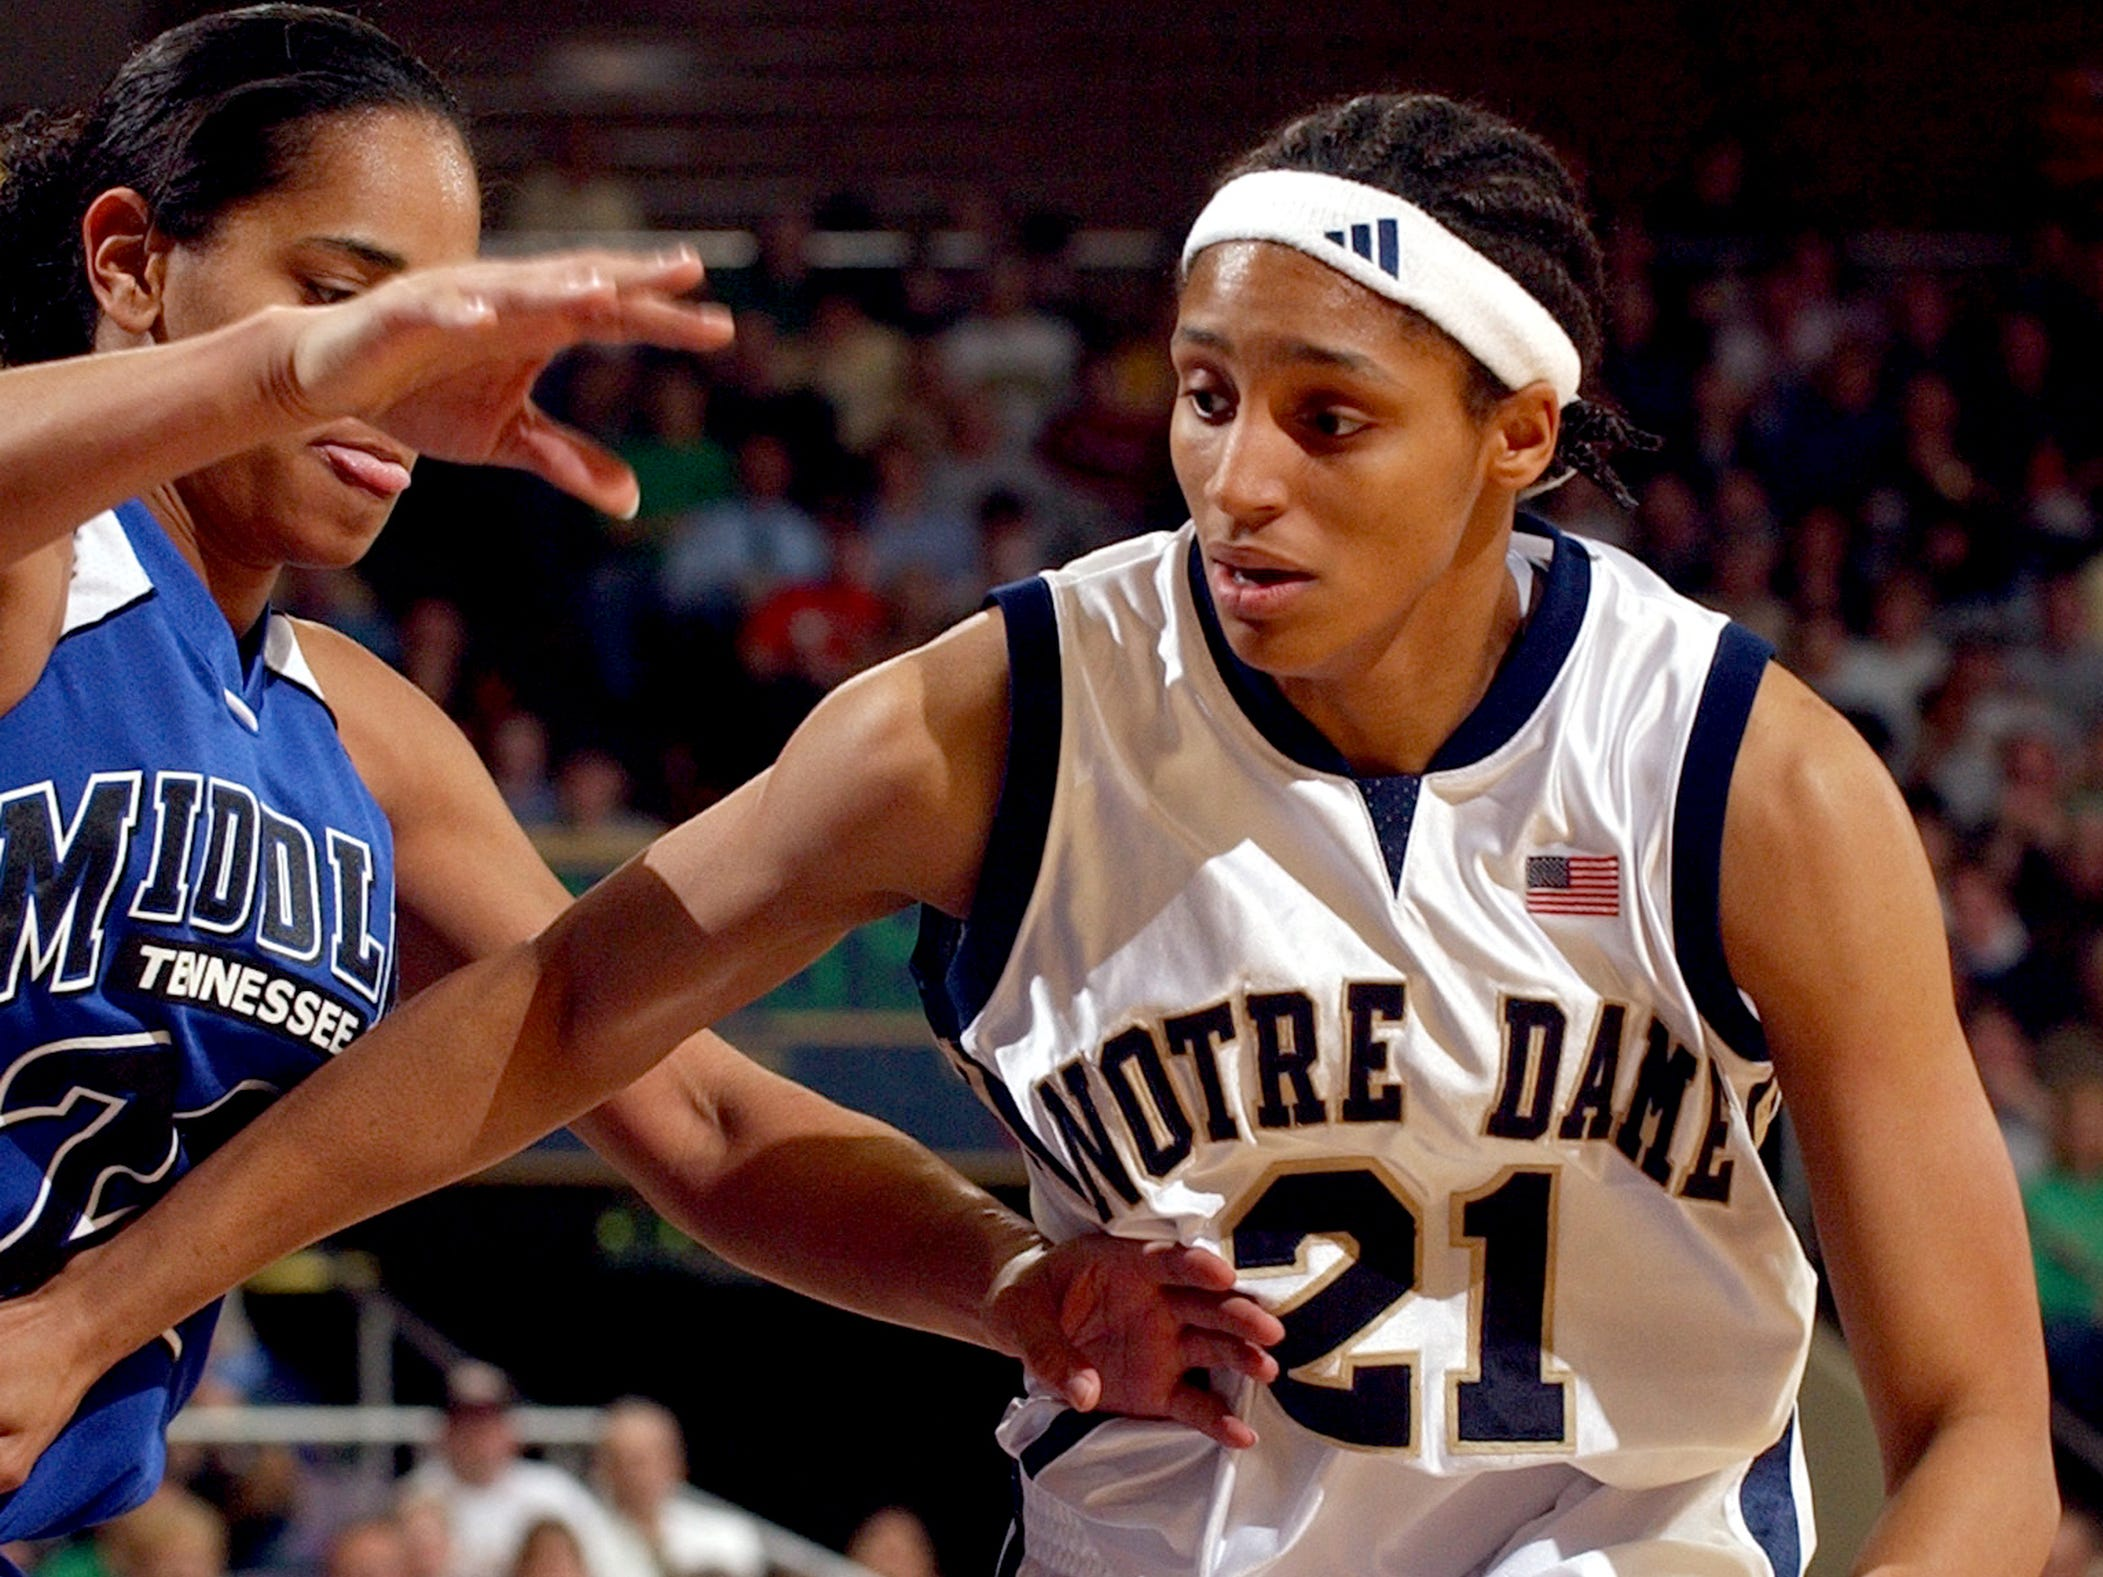 Notre Dame guard Jacqueline Batteast attempts to drive the lane against Middle Tennessee State guard Tia Stovall during the first half of a second round NCAA East game Tuesday March 23 2004 in South Bend Ind.